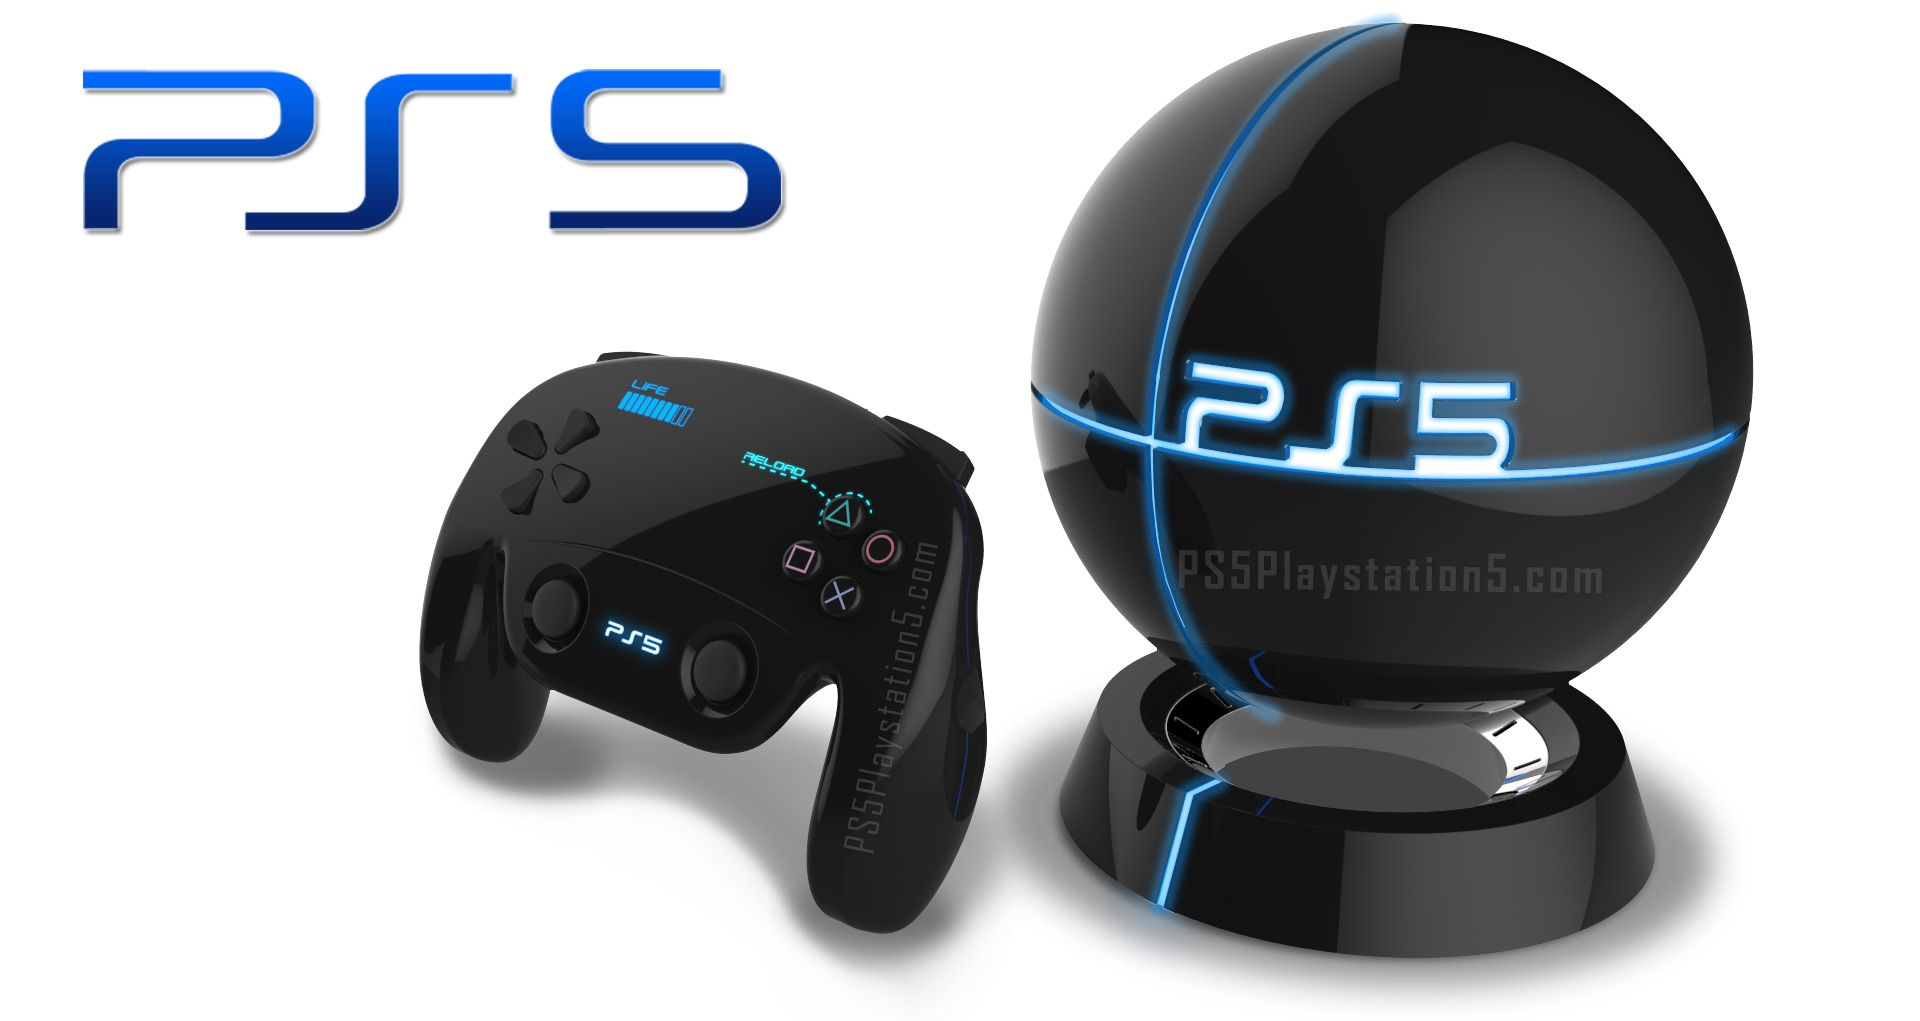 Epic Ps5 Levitating Design With Controller Playstation 5